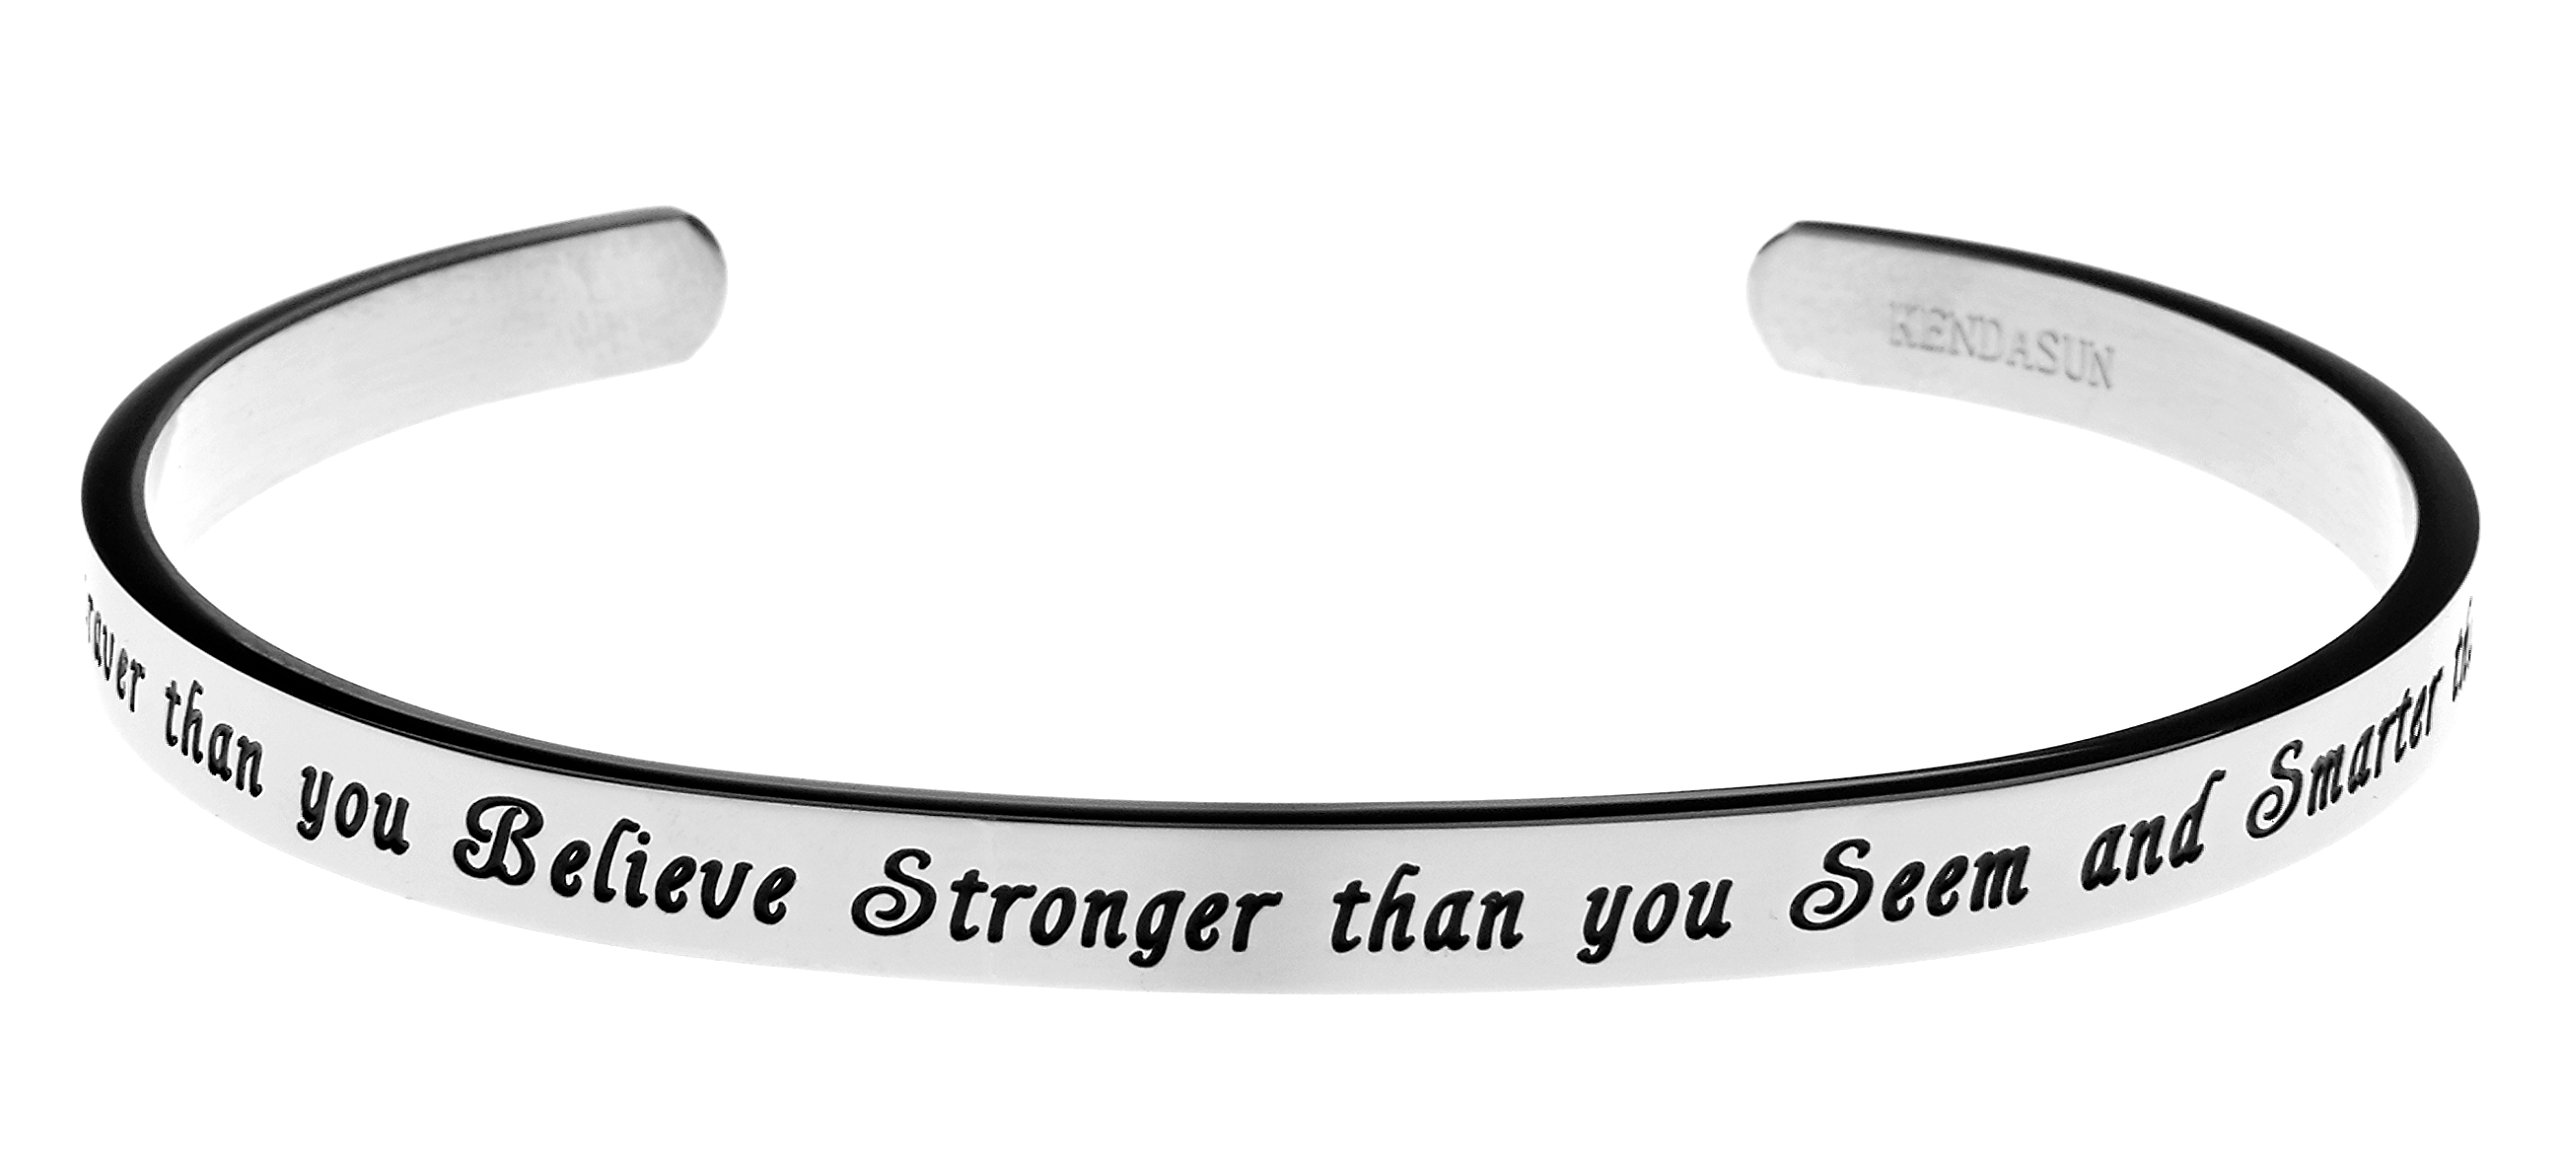 ''You are Braver than you Believe Stronger than you Seem and Smarter than you Think'' Cuff Bangle Bracelet (White)